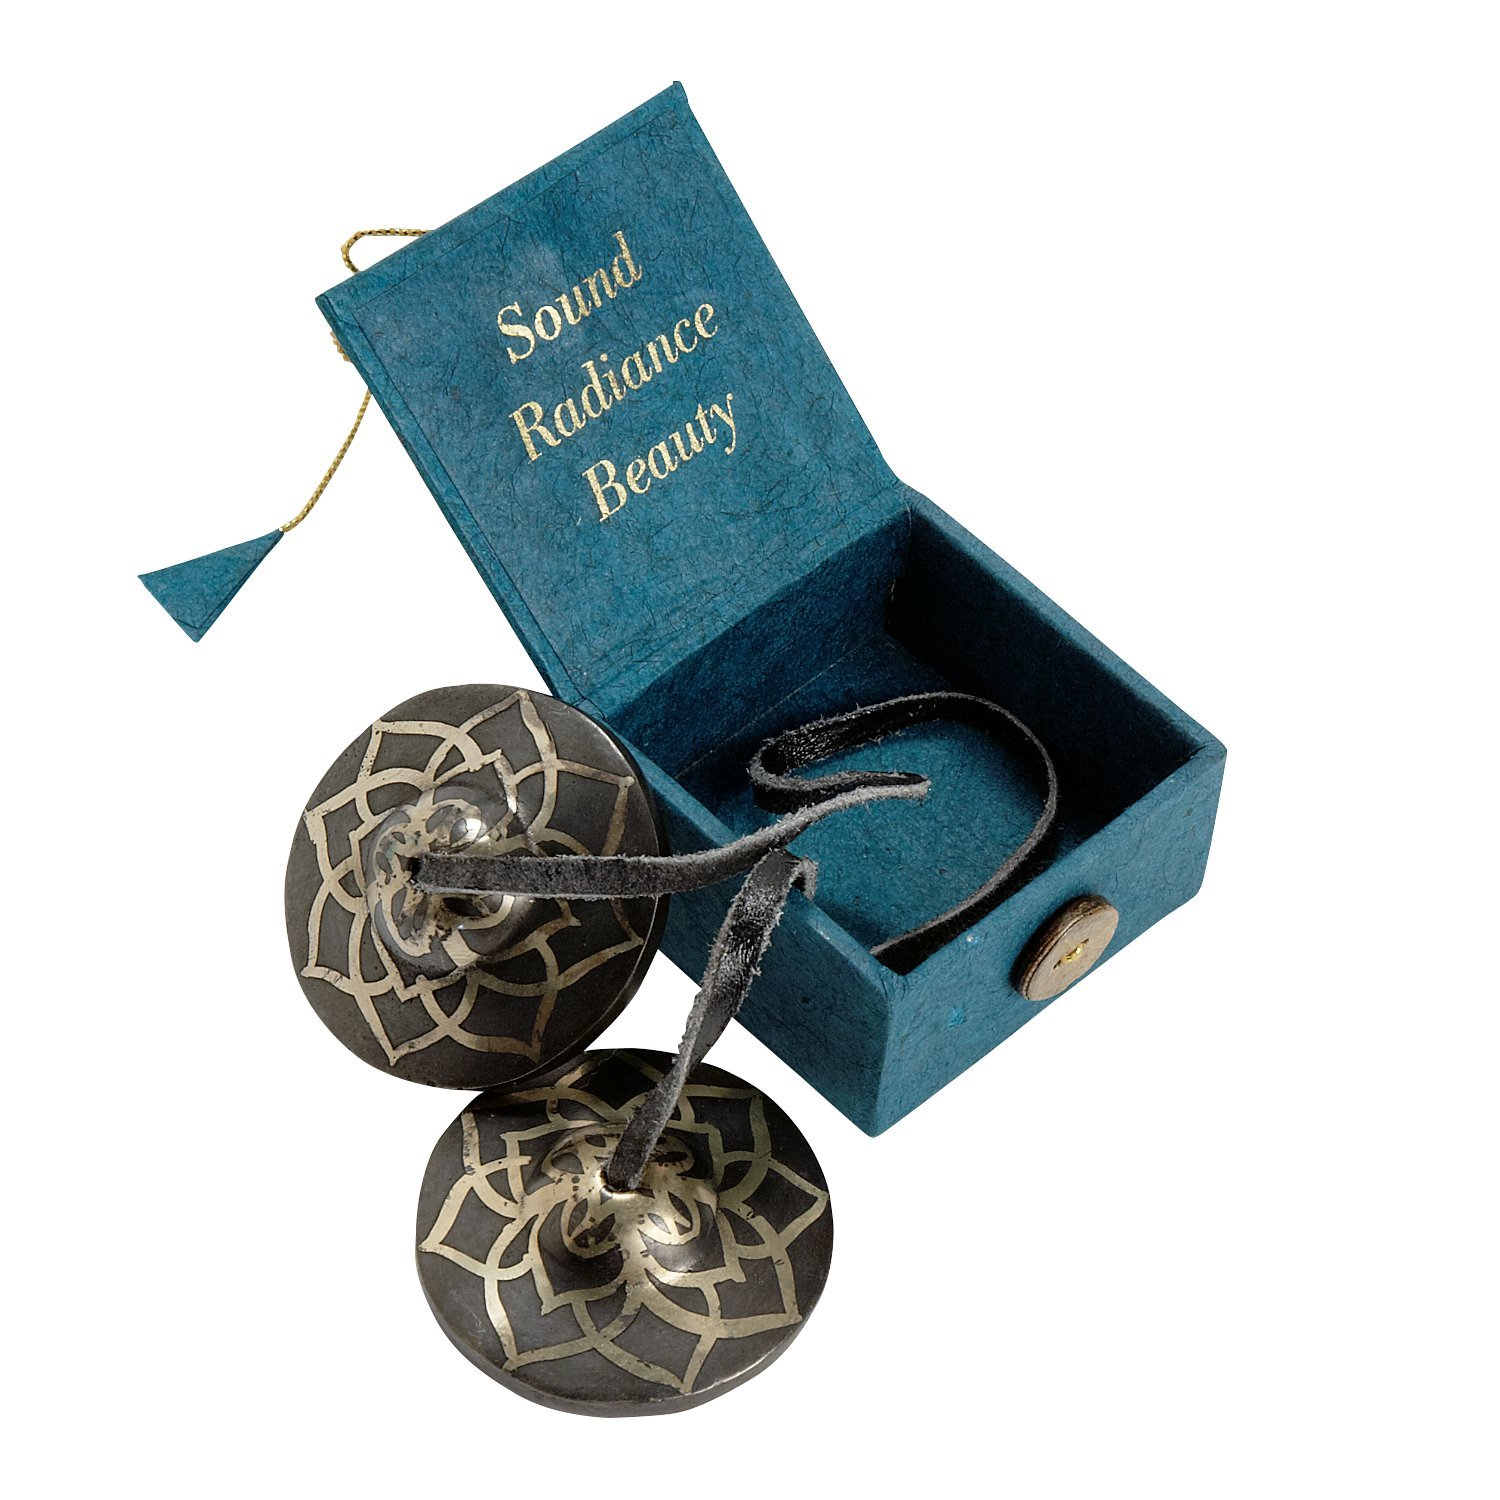 Small Soothing Cymbals In Box 'Radiance Cymbals'